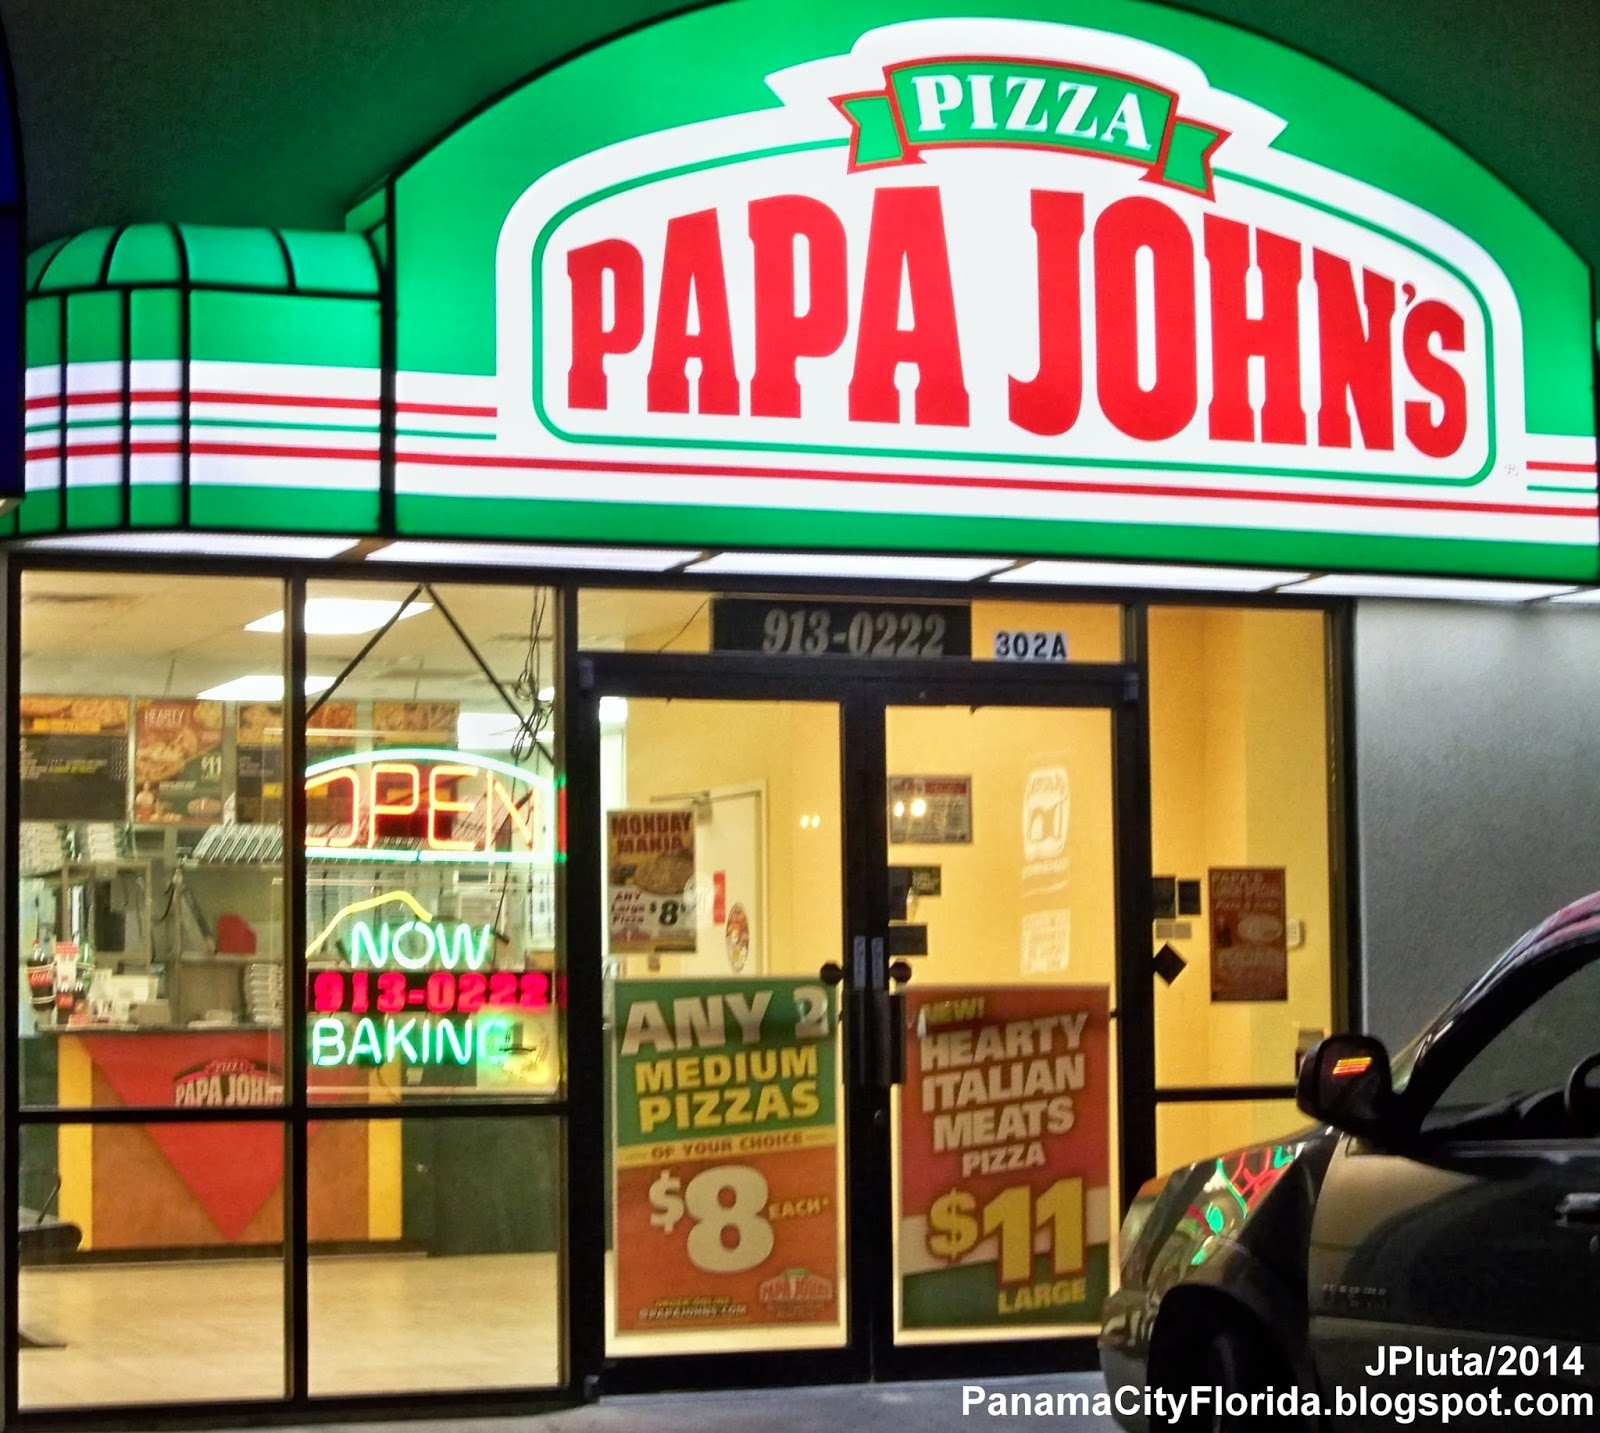 Papa Johns Coupons (Printable Coupons & Promo Codes) - 2019 - Free Printable Coupons For Panama City Beach Florida